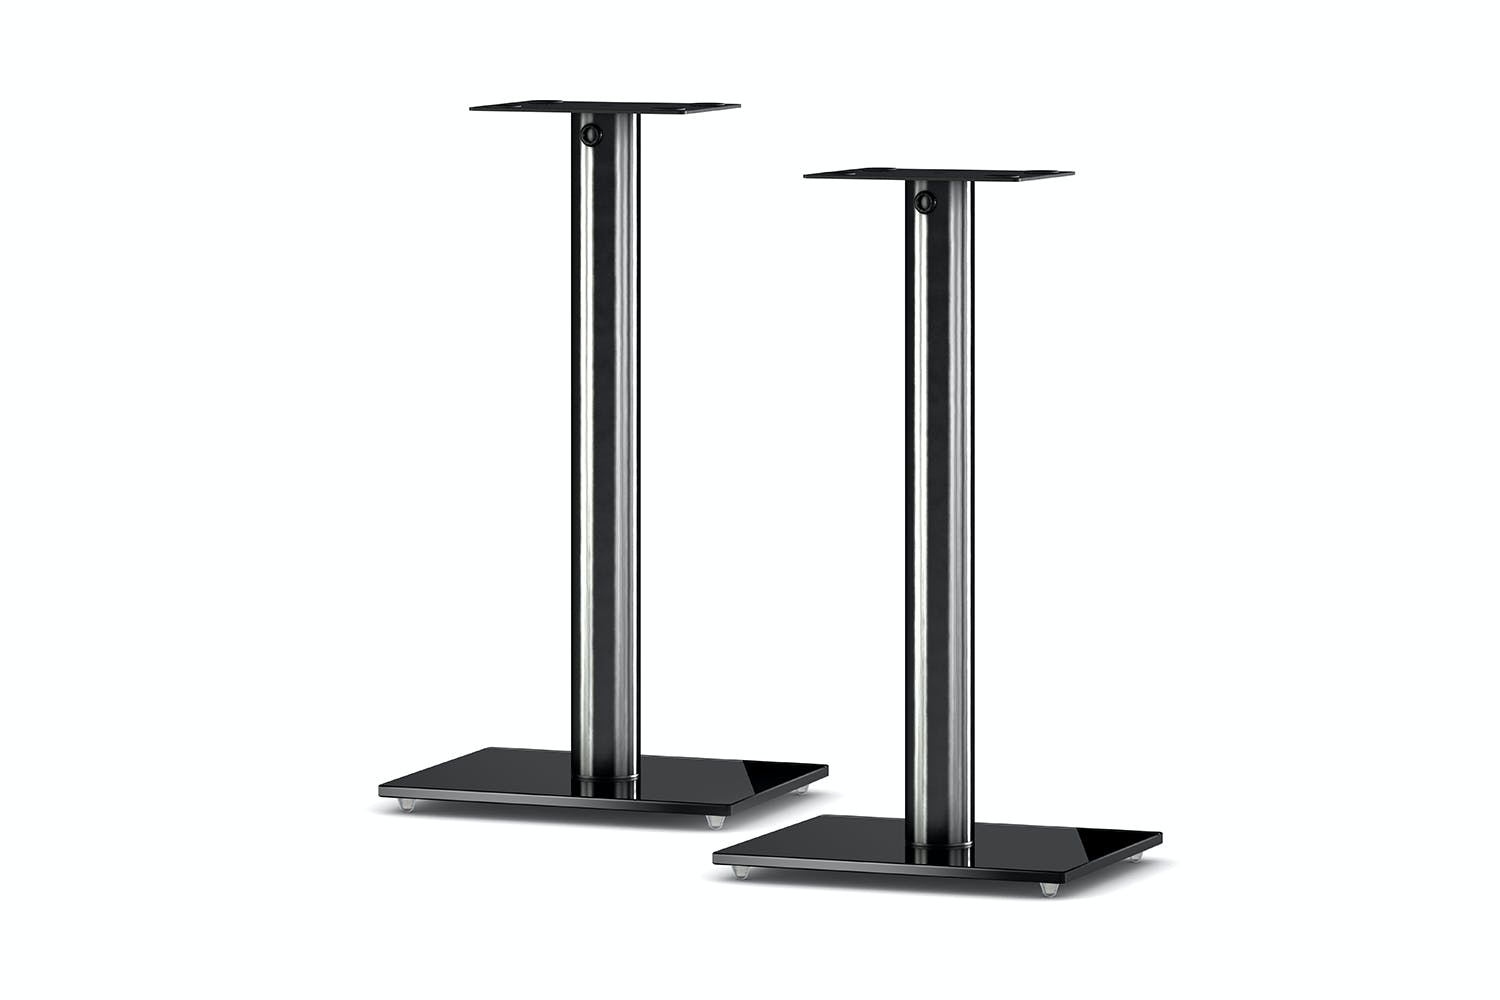 Sonorous 24 Speaker Stand